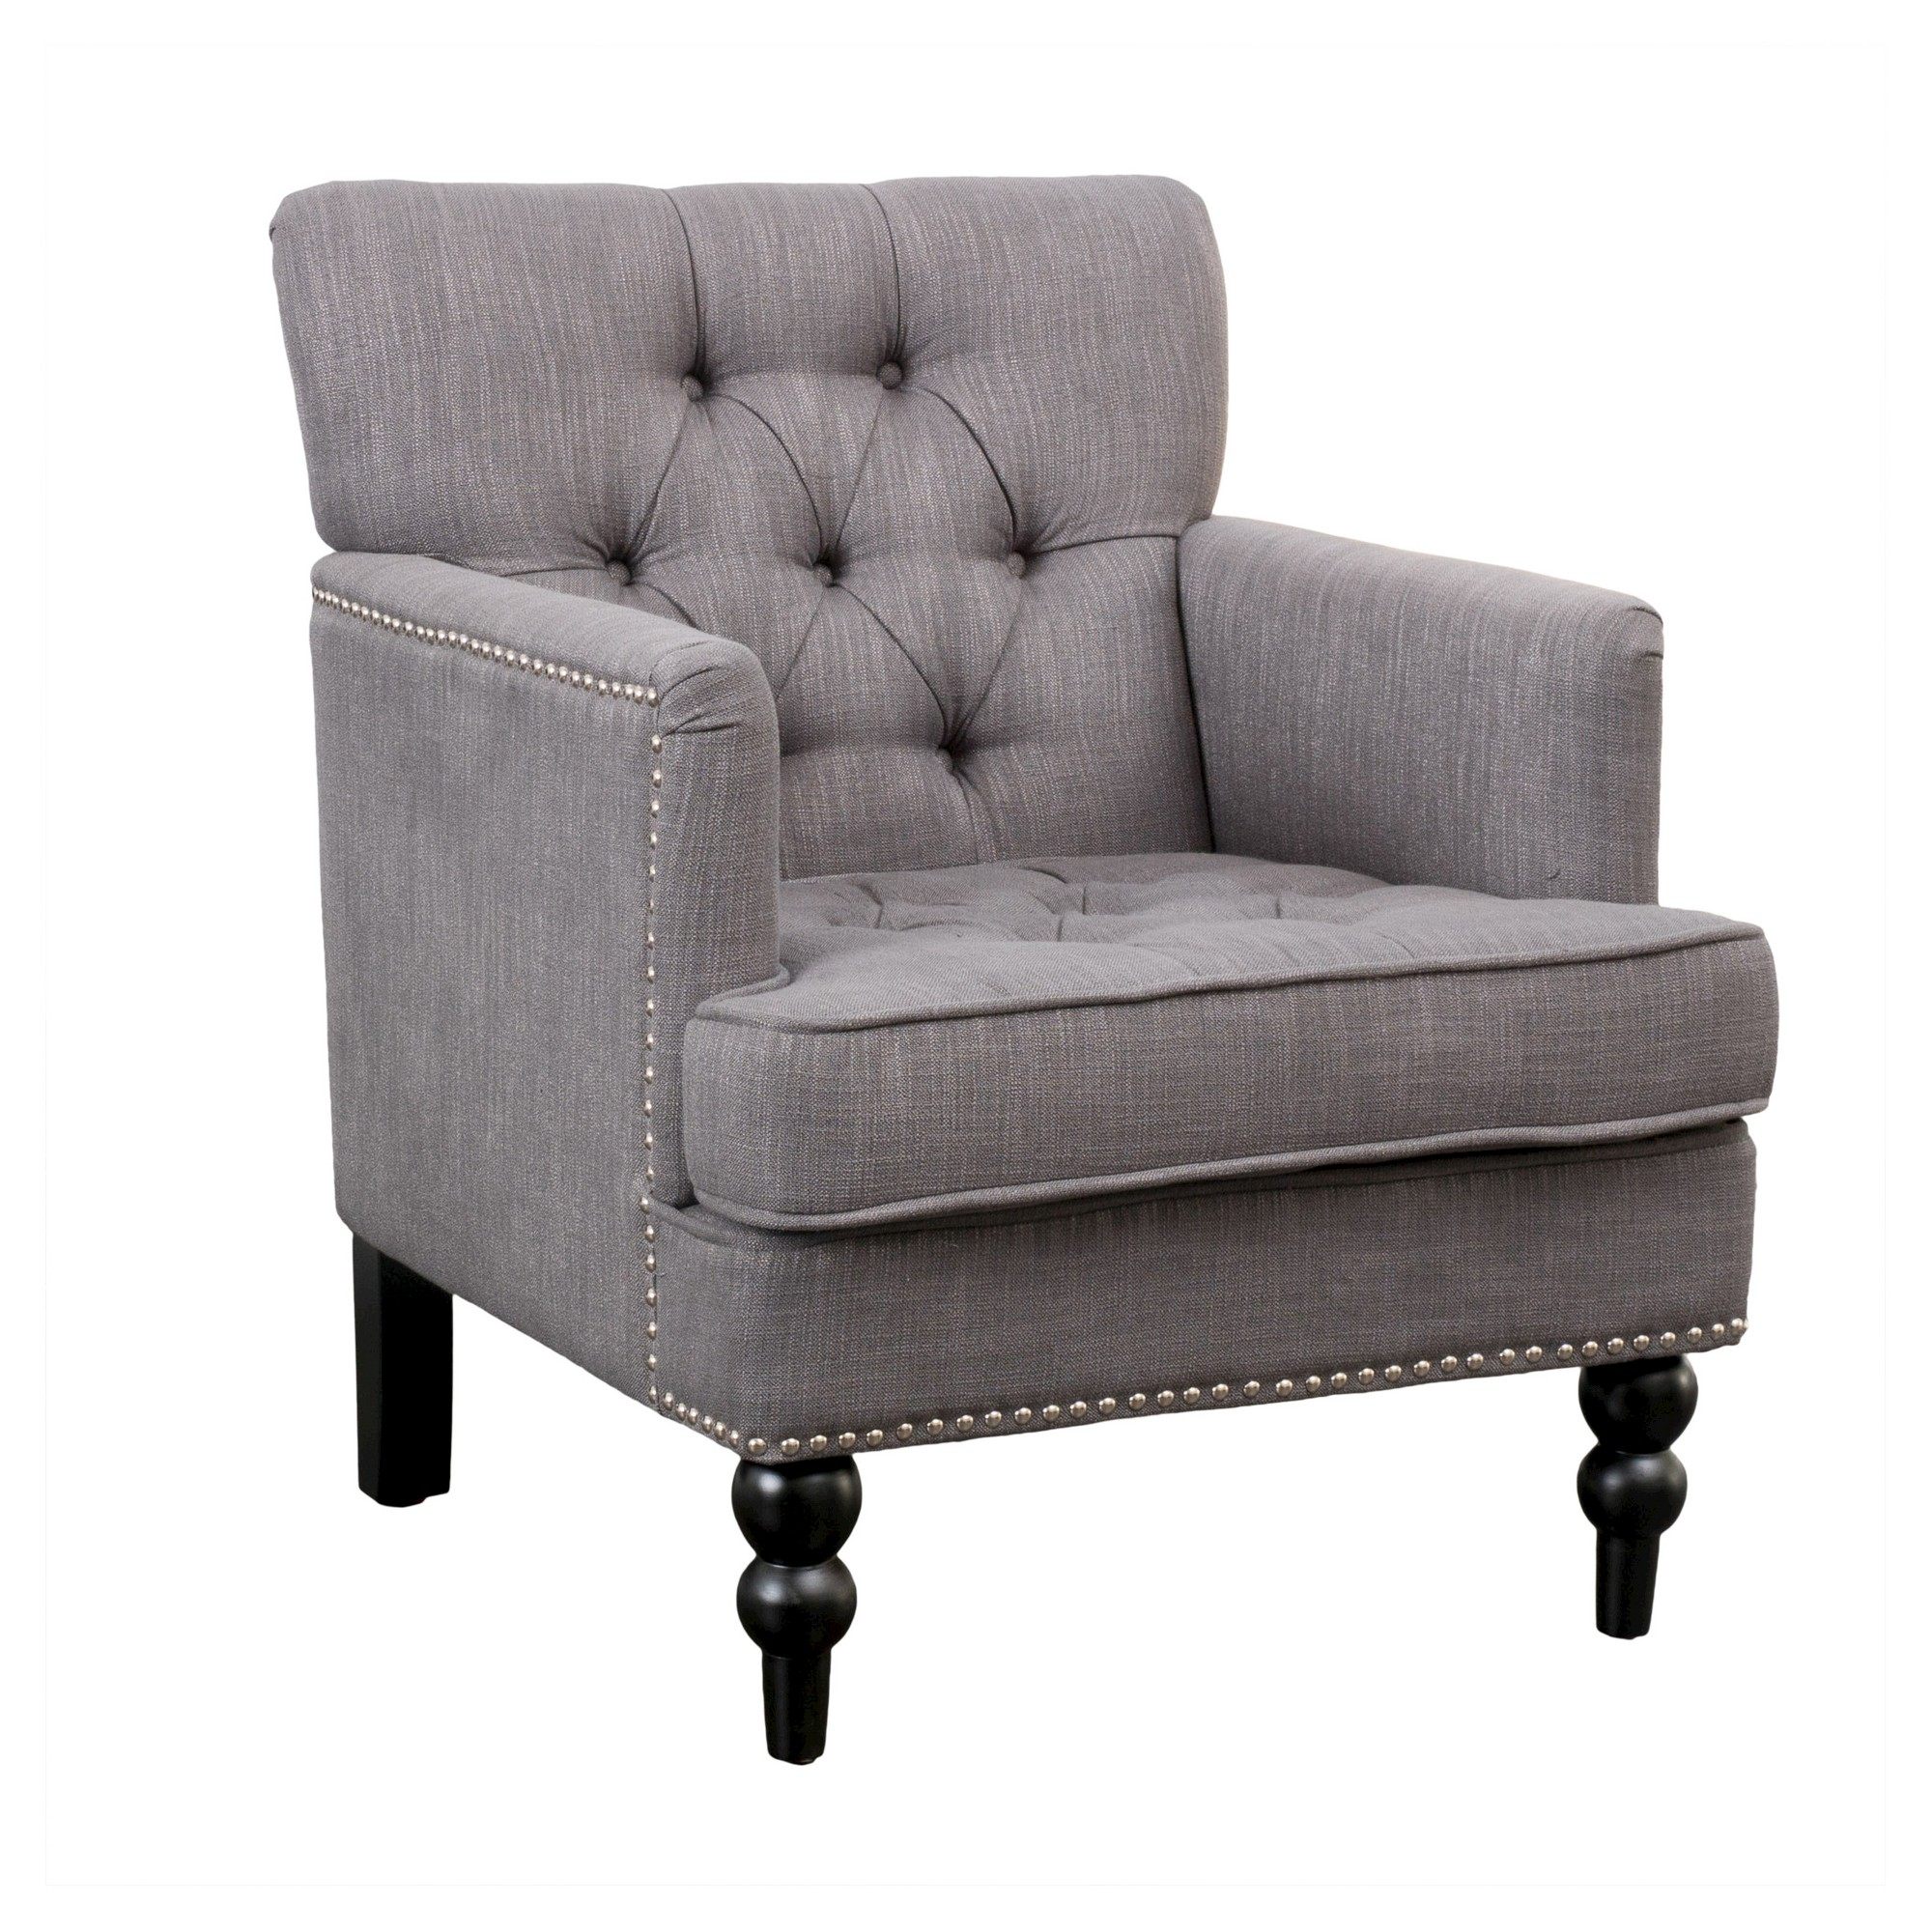 christopher knight club chair plush office home malone charcoal grey